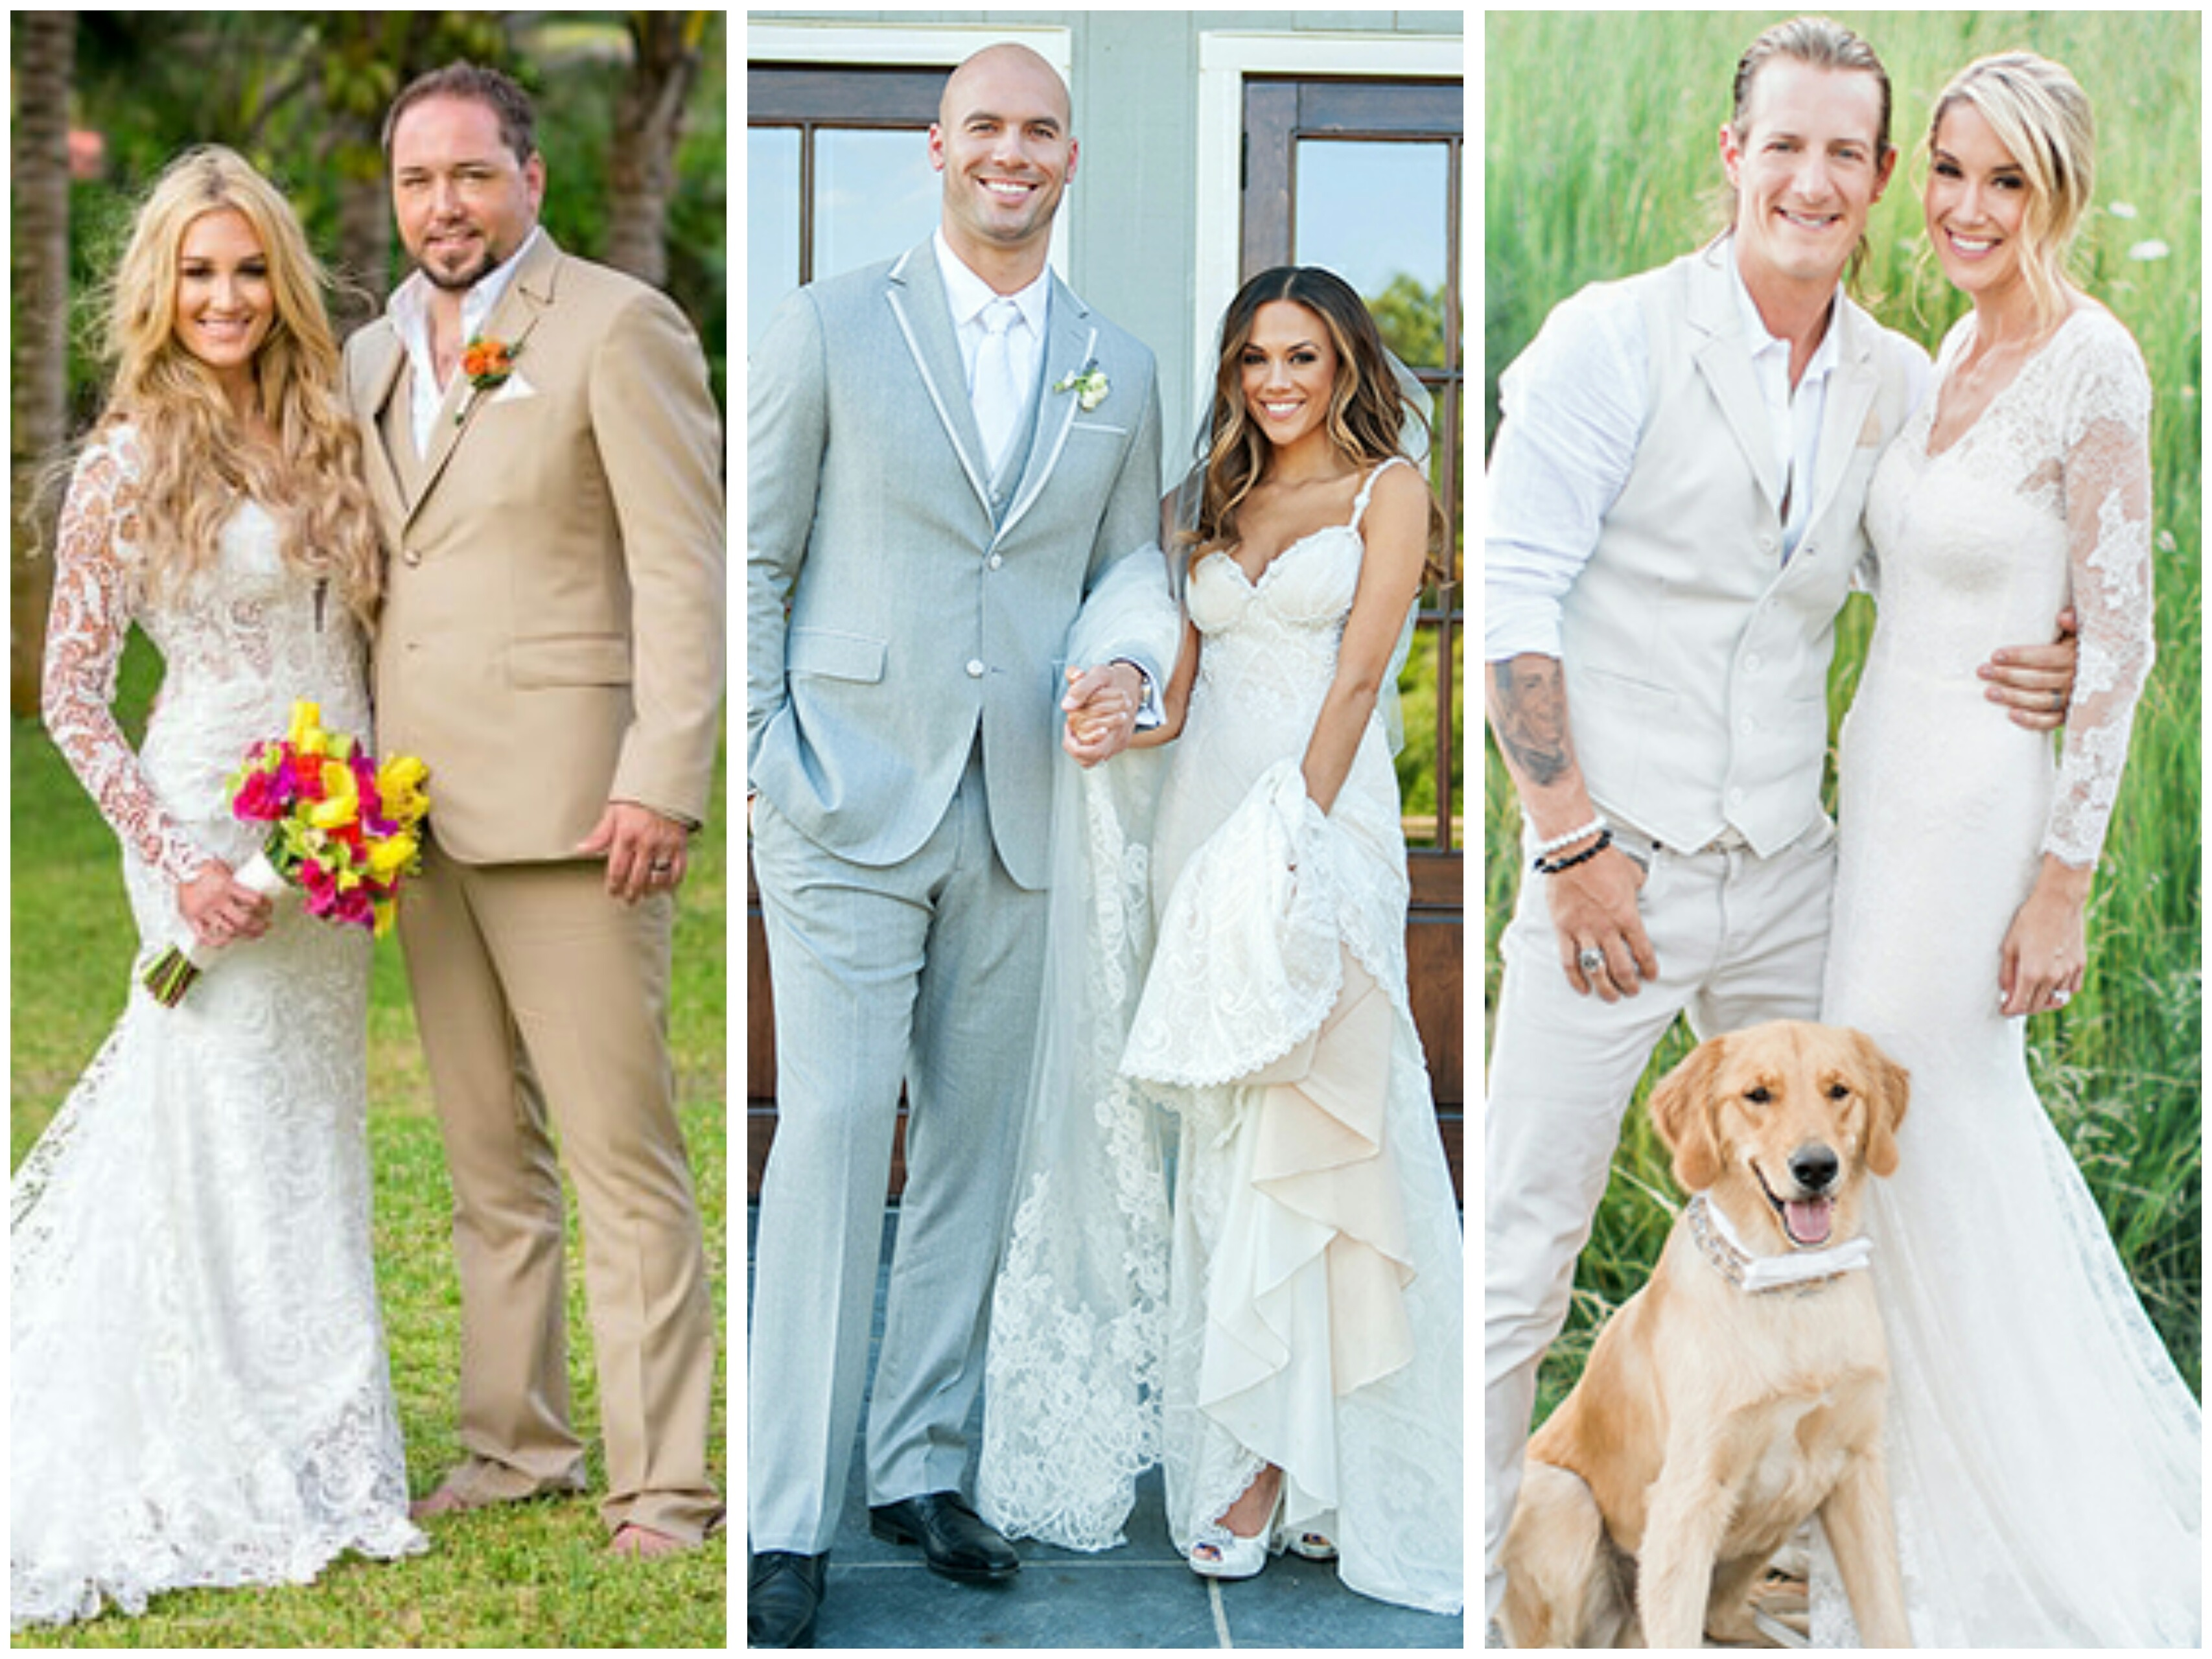 Country Music Year in Review: 2015 Weddings | Sounds Like Nashville